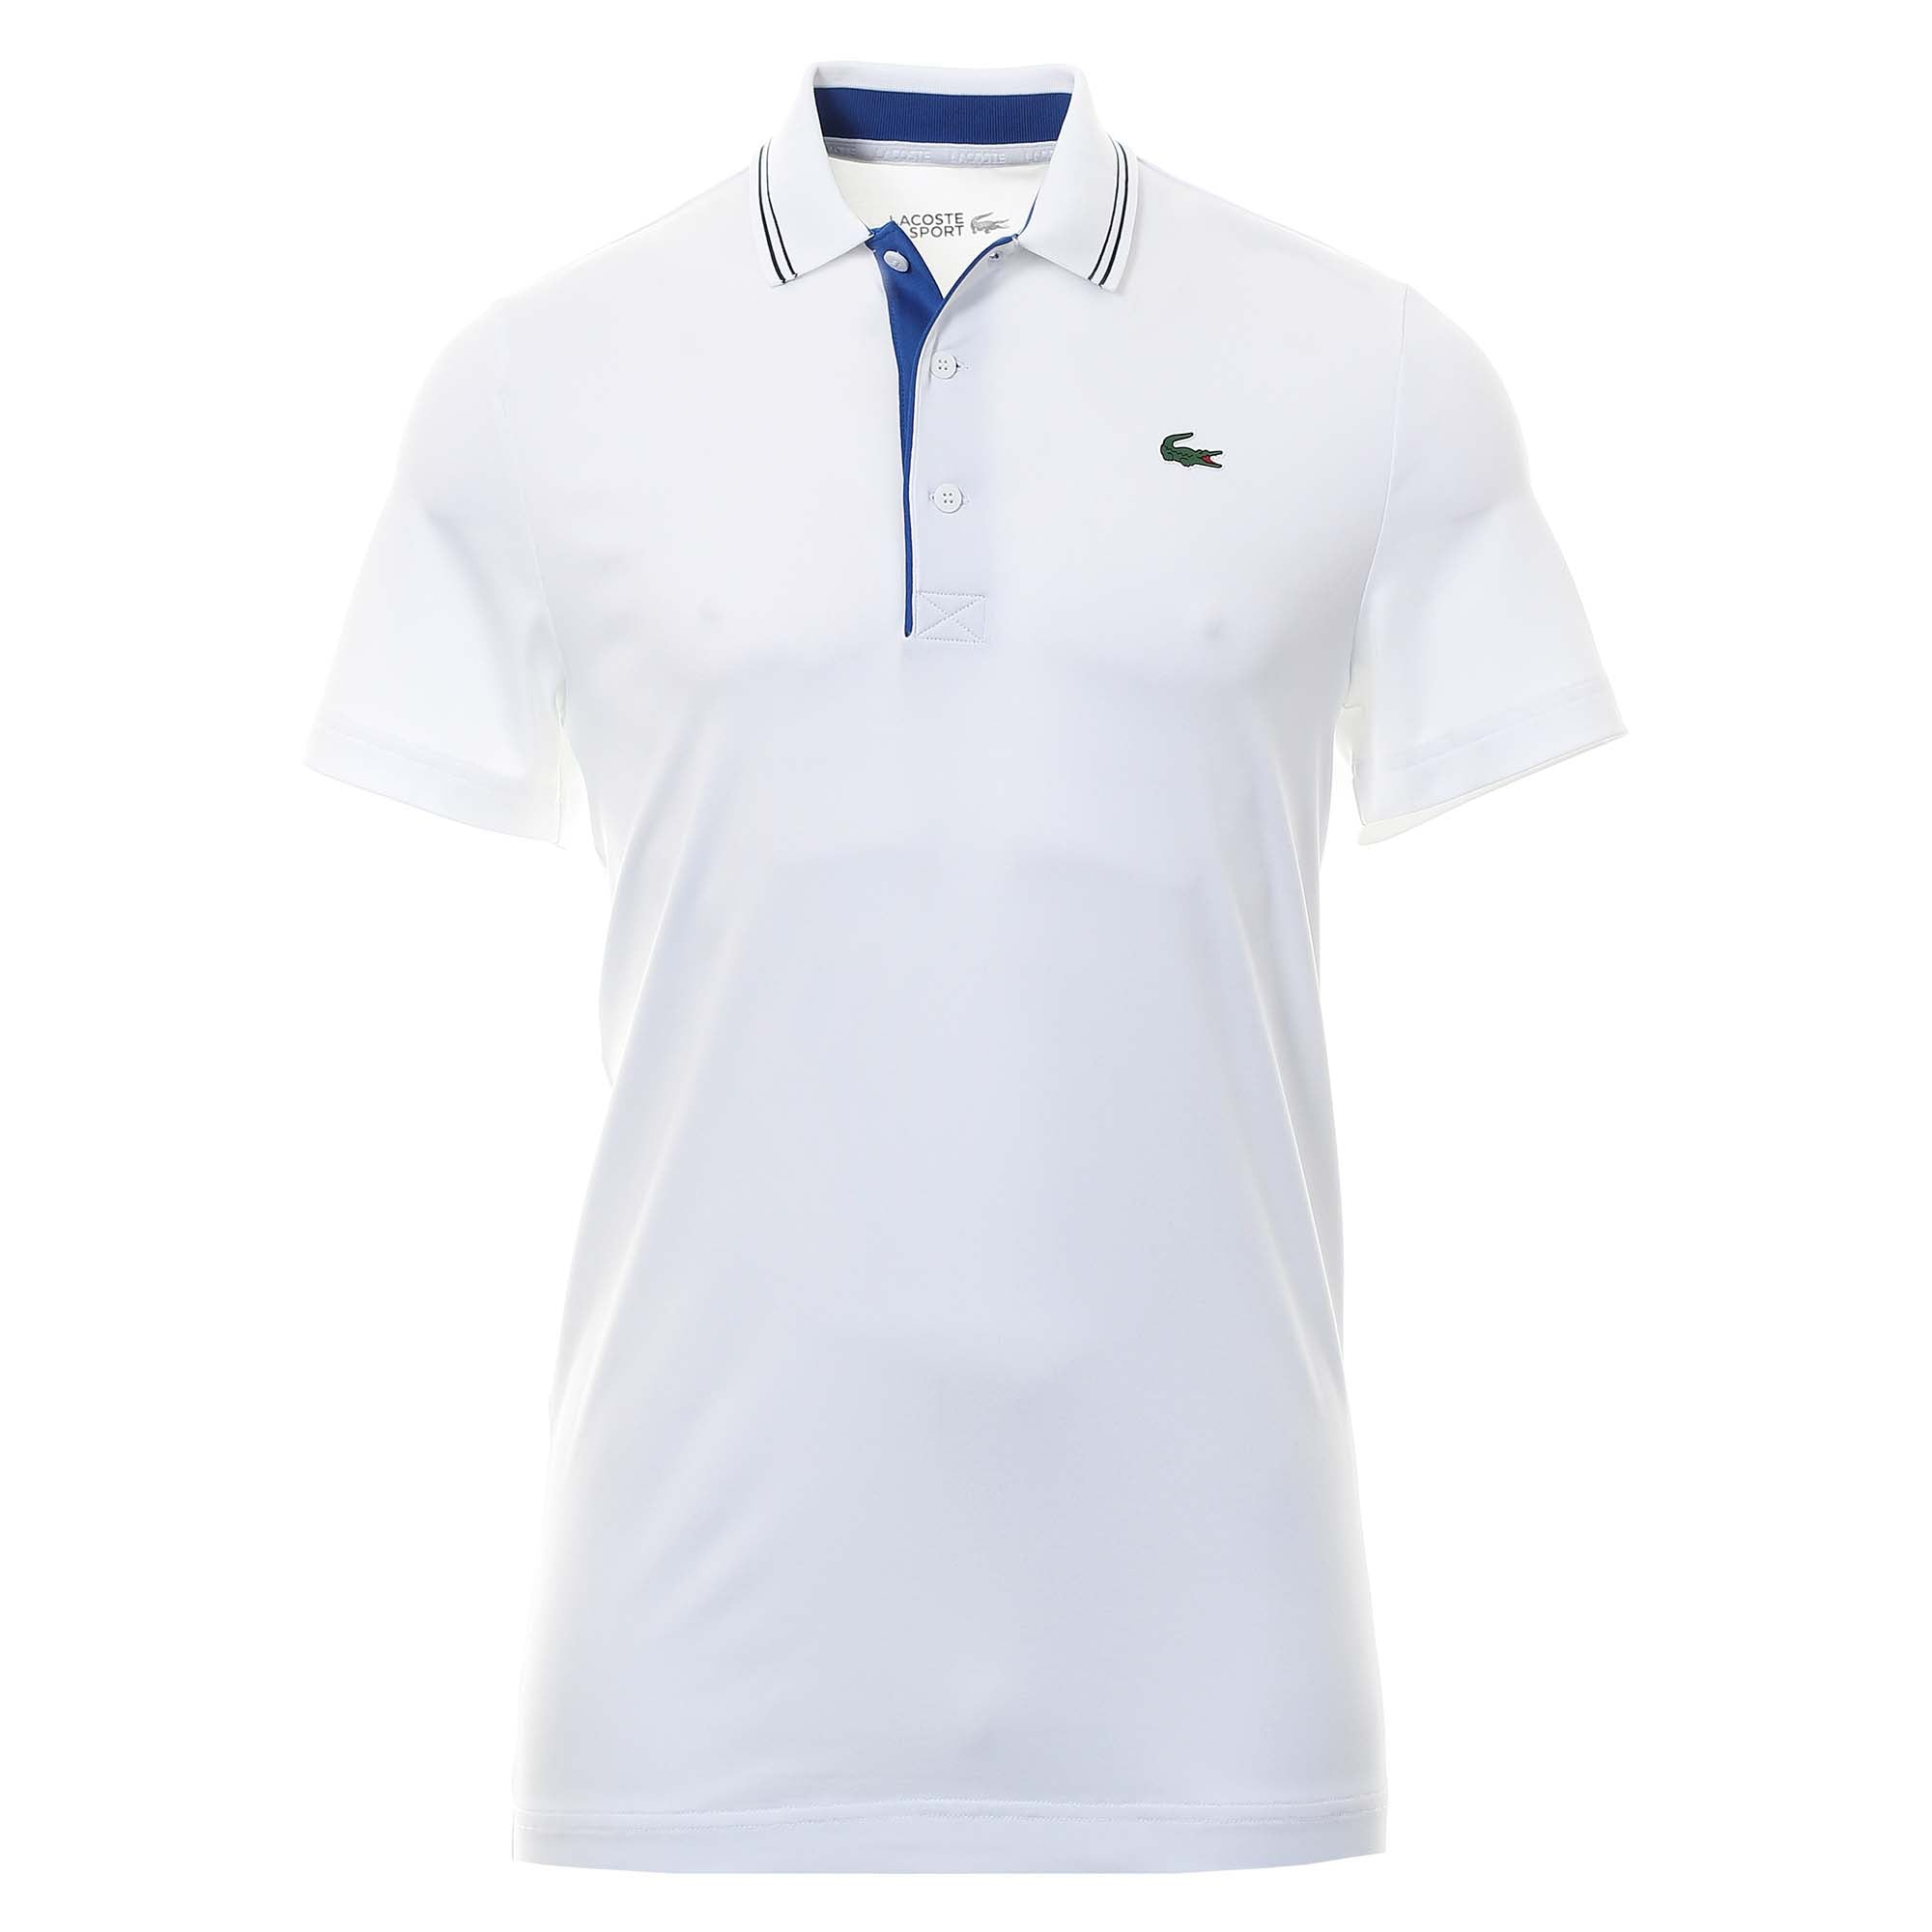 Lacoste Technical Stretch Jersey Polo Shirt DH0441